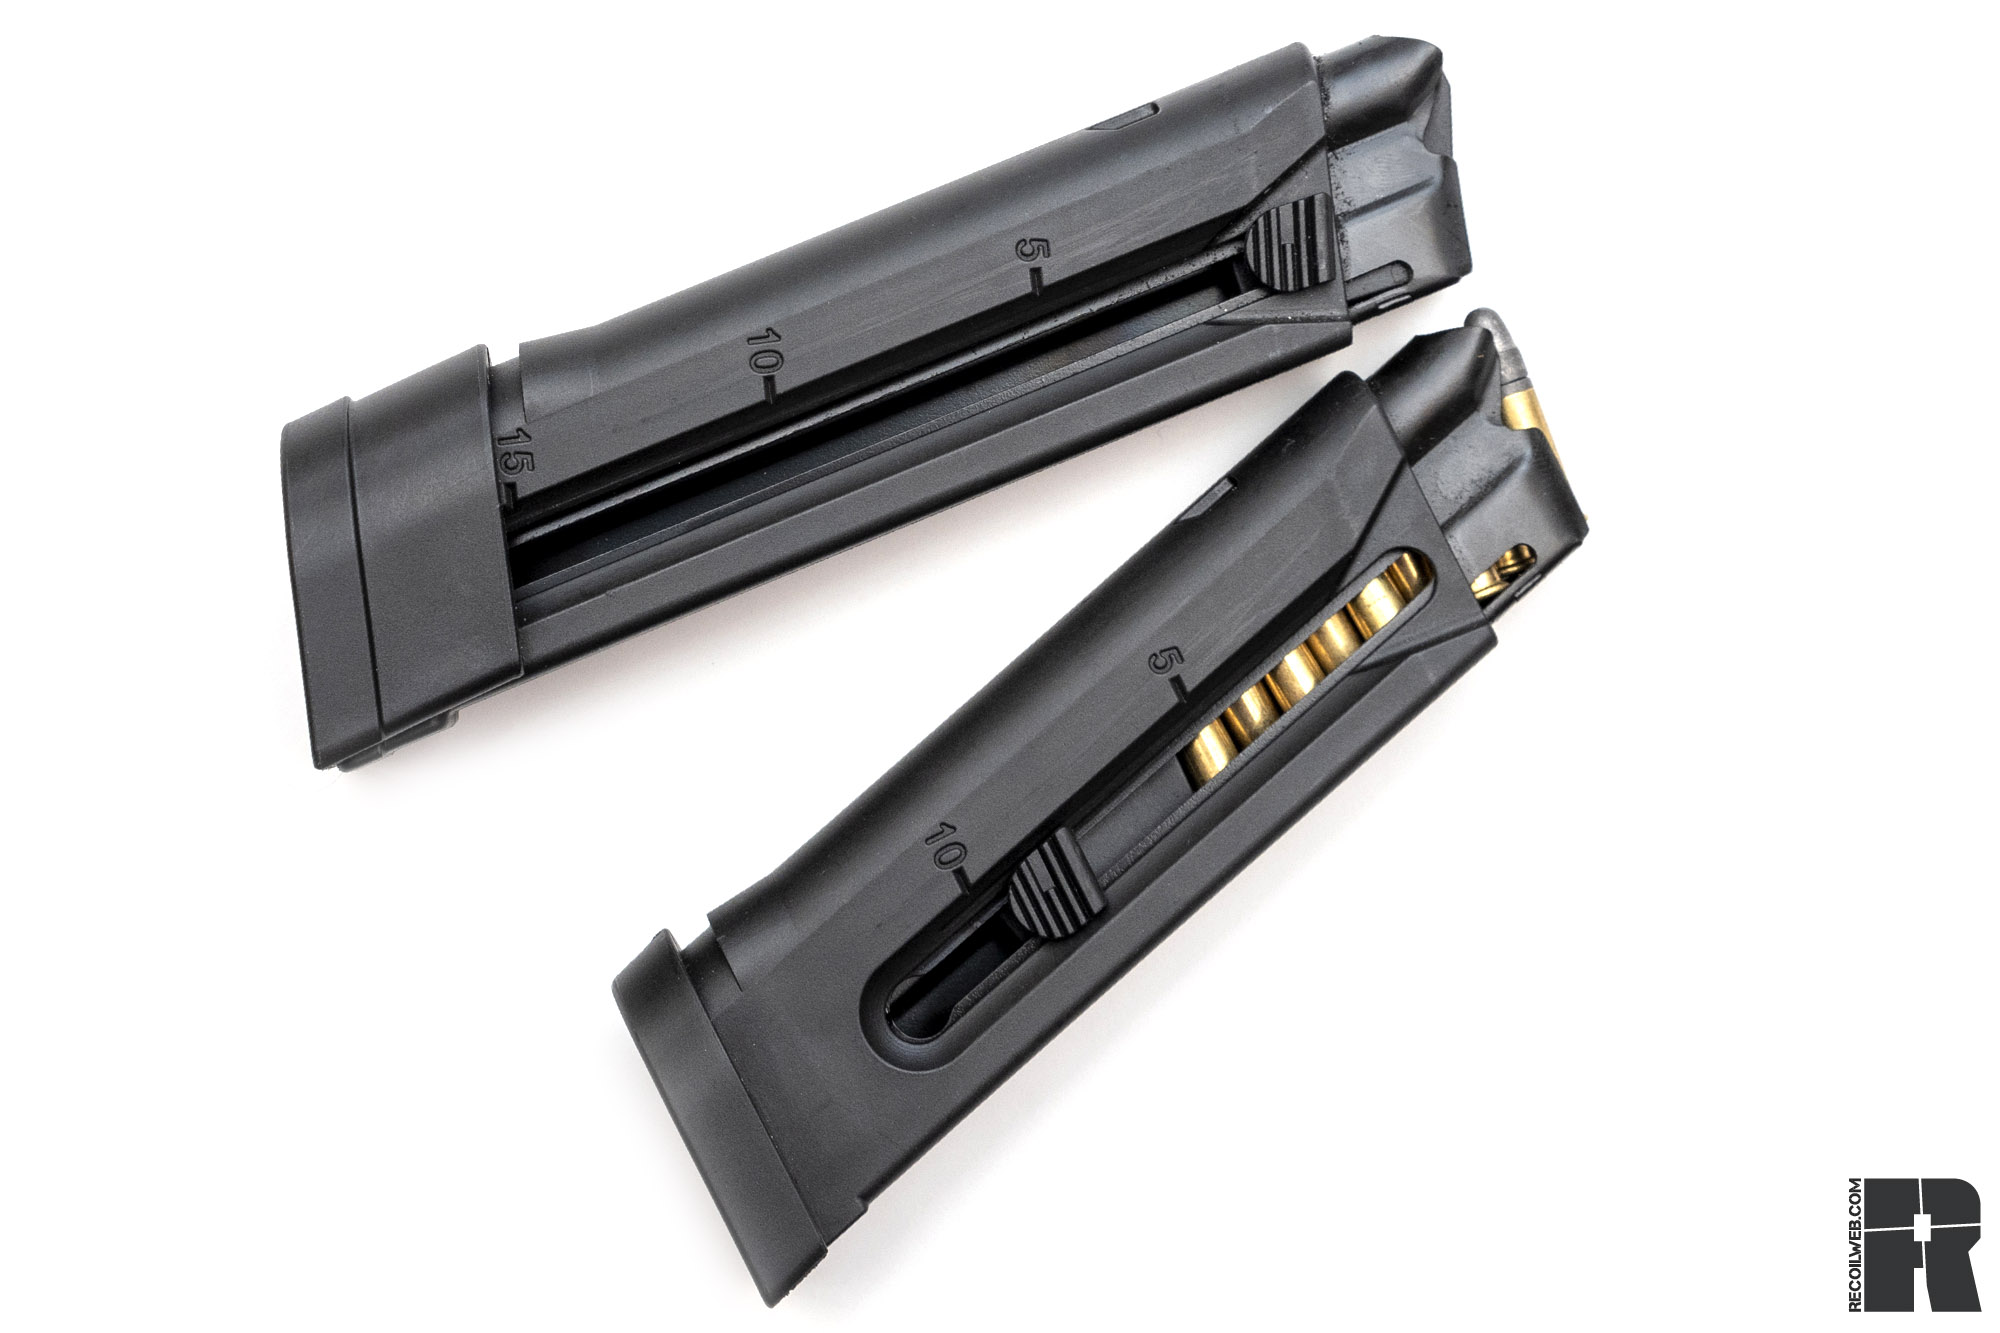 FN 502 tactical magazines